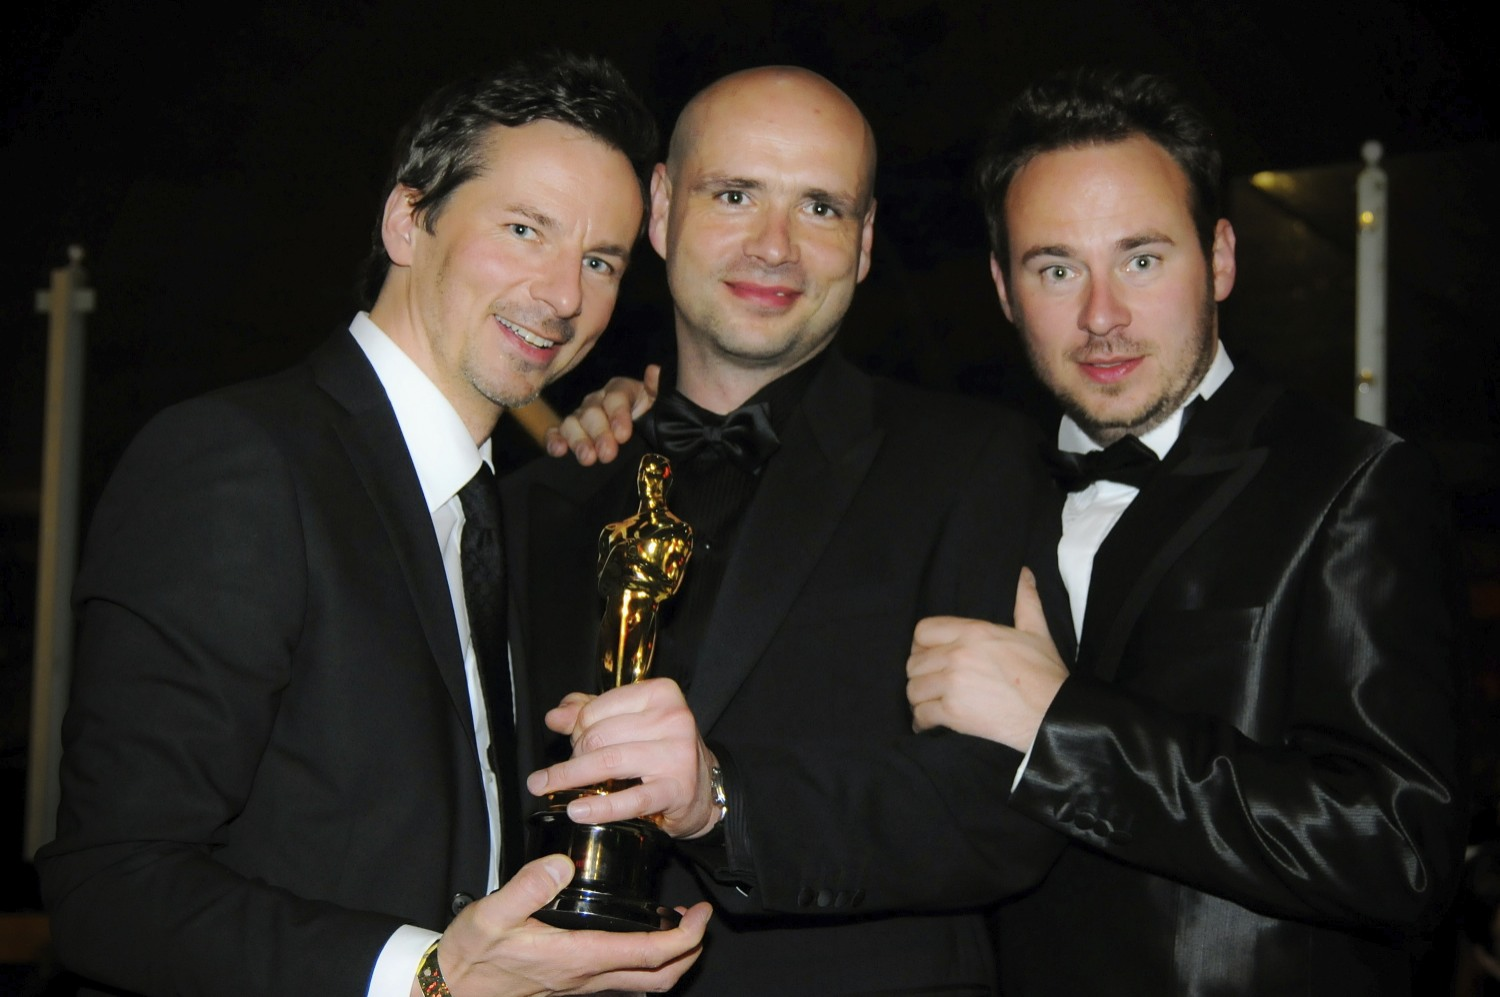 LOS ANGELES, CA - FEBRUARY 22: (L-R) Actor and producer DAVID BUNNERS, director and producer JOCHEN FREYDANK, screenwriter JOHANN BUNNERS at the 81st Annual Academy Awards held at Kodak Theatre on February 22, 2009